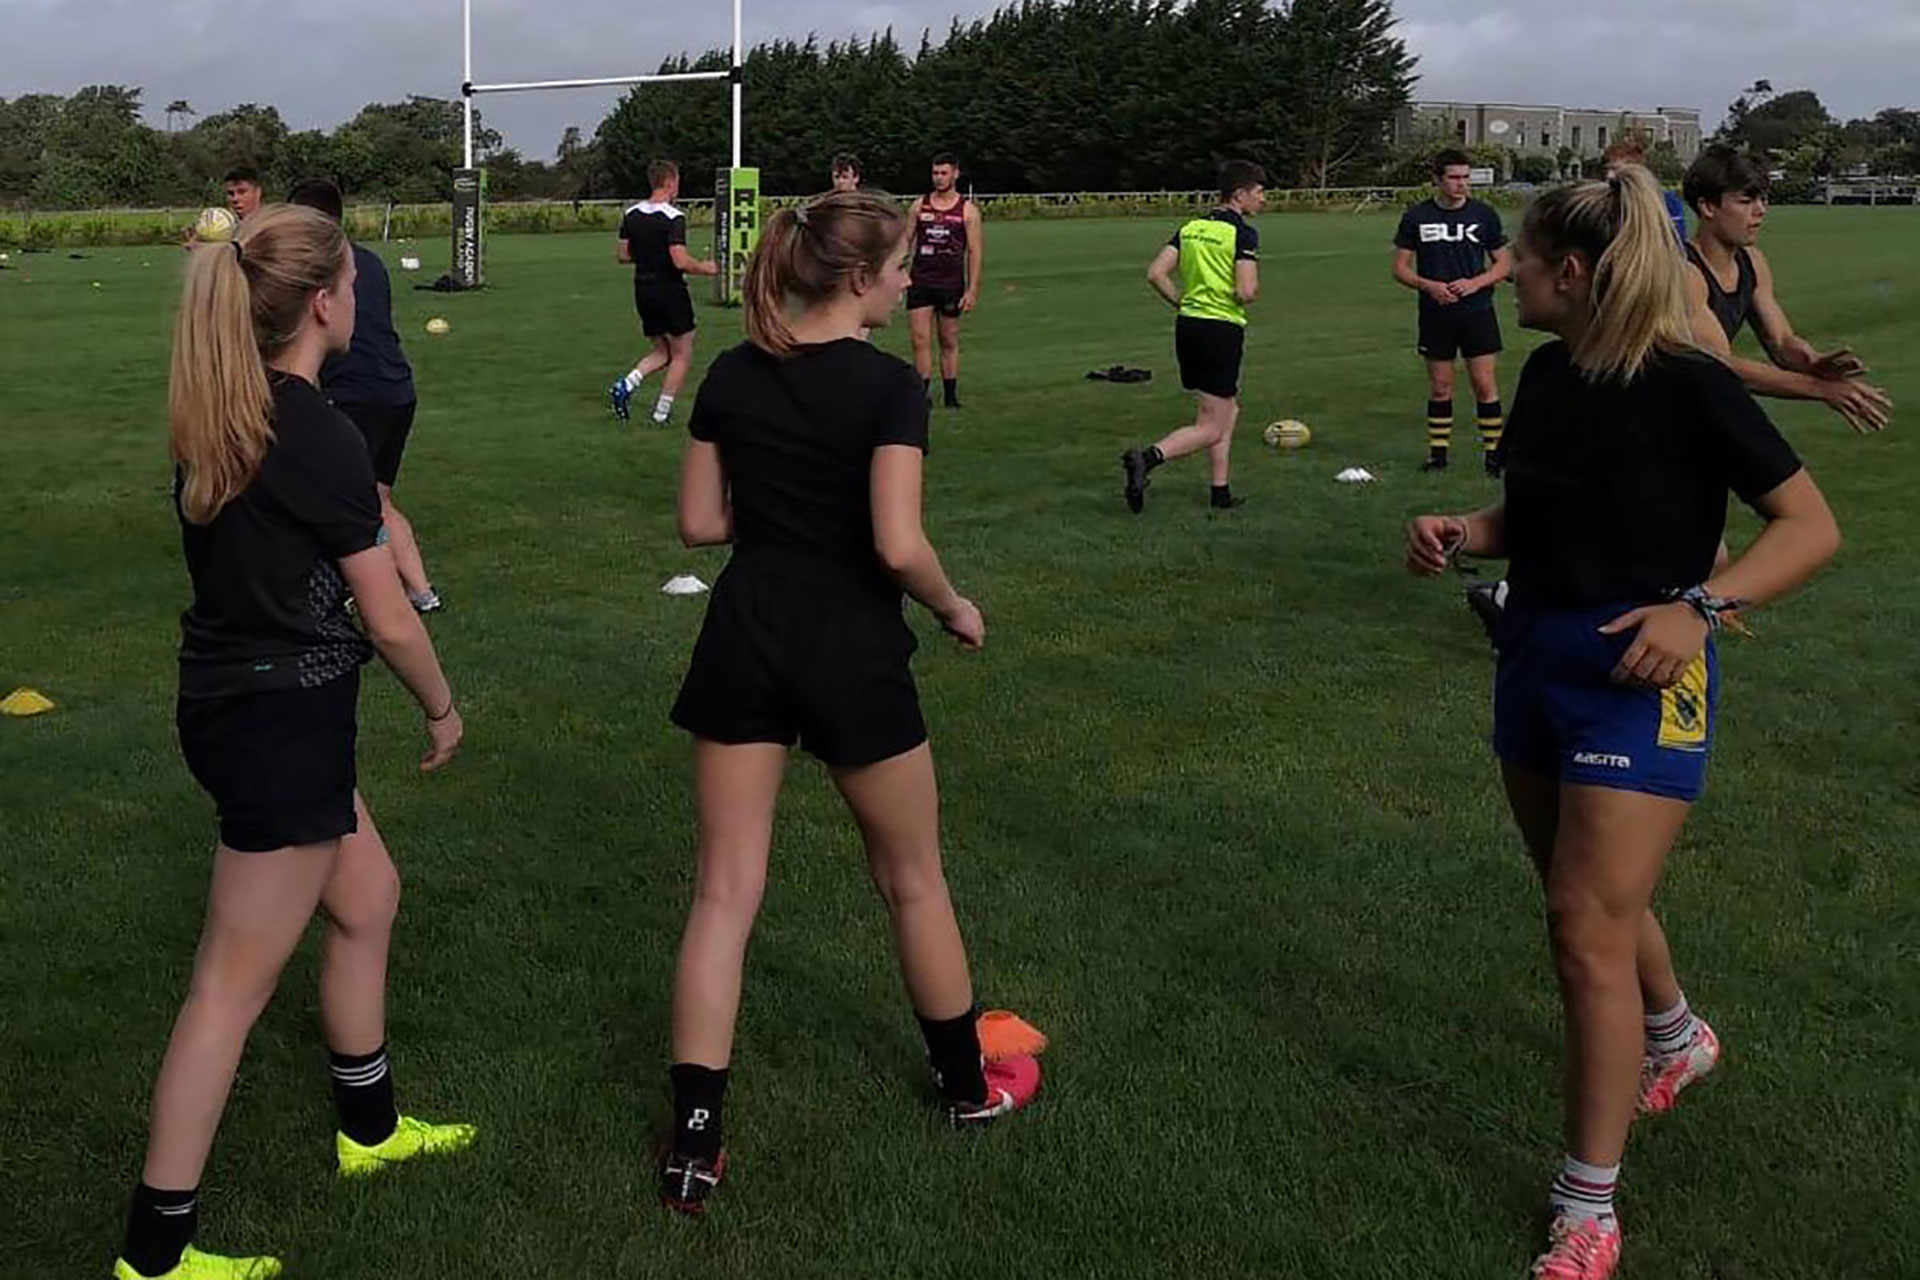 Female rugby players at the Rugby Academy Ireland